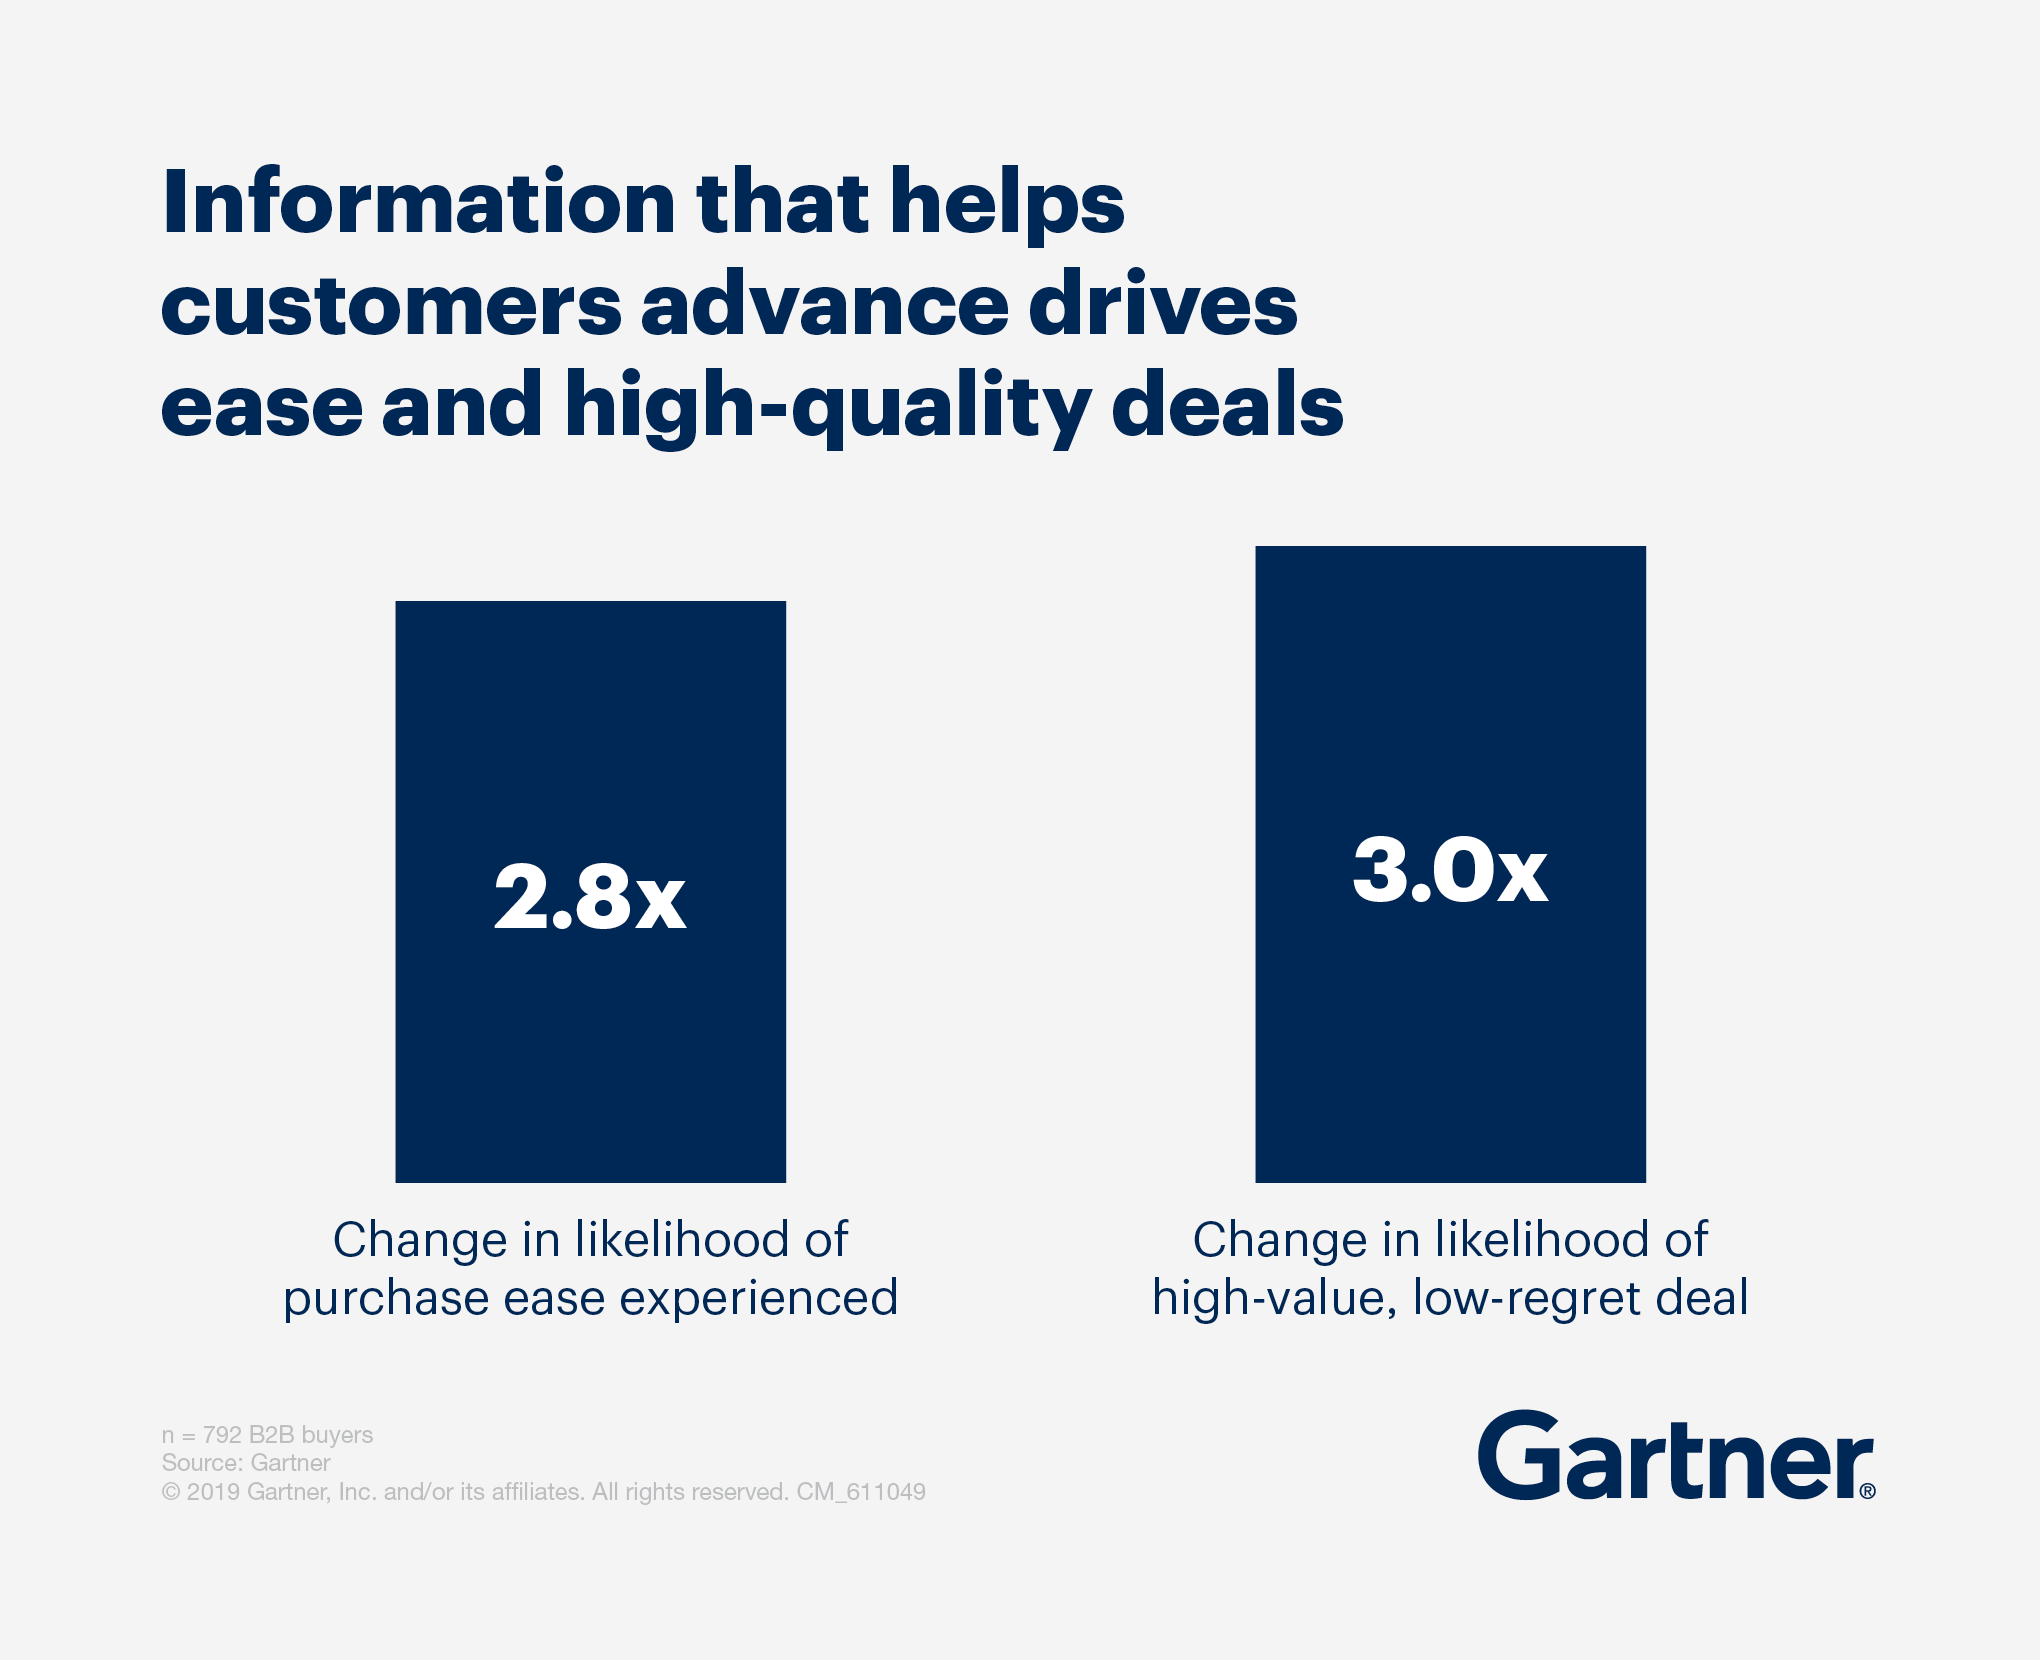 Information that helps customers advance drives ease and high-quality deals.